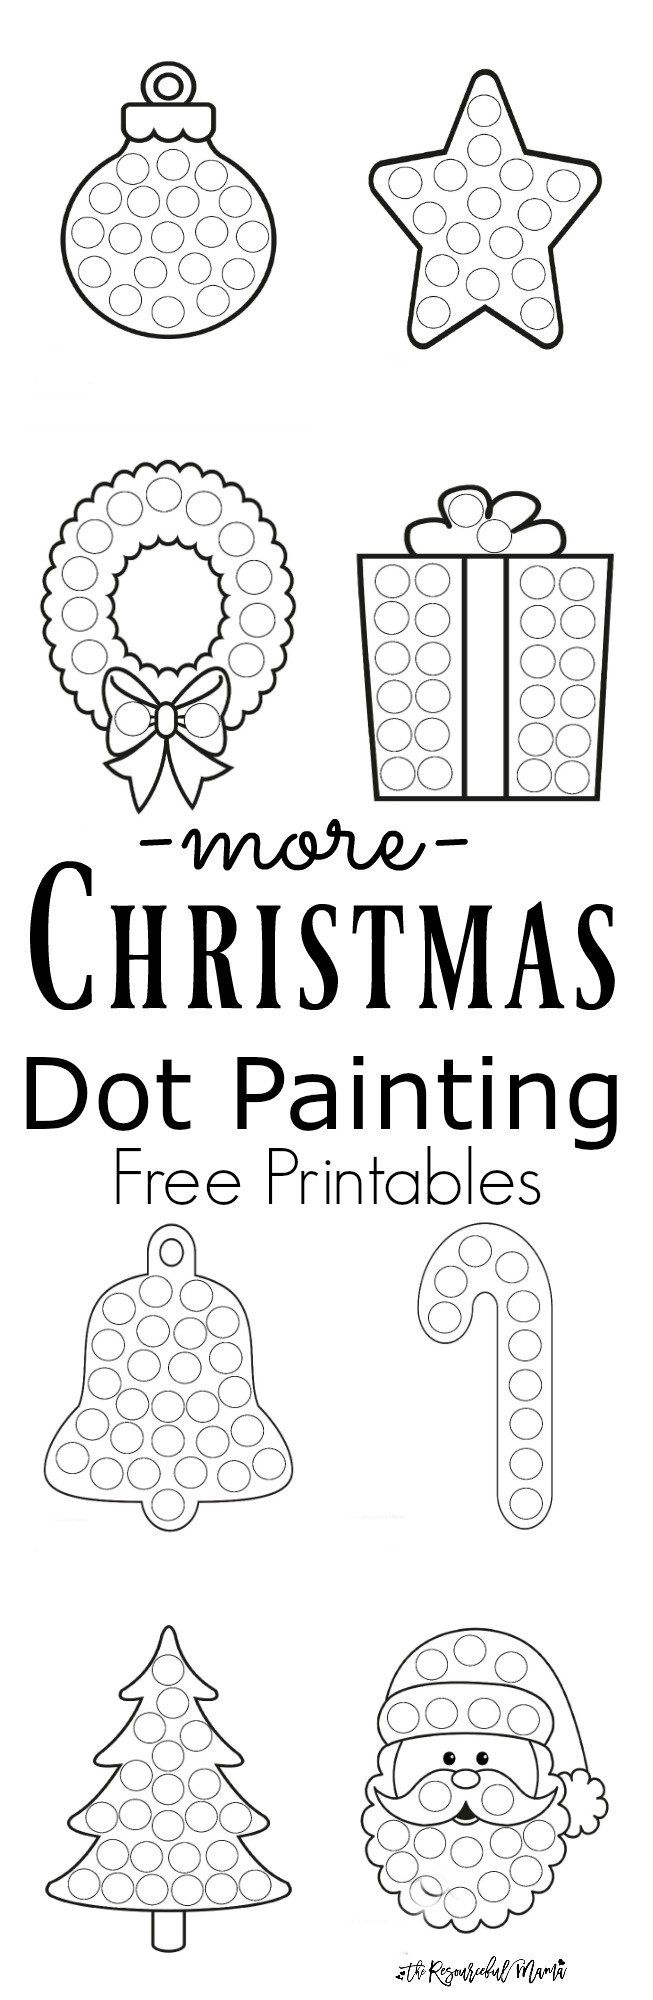 Free Printable Christmas Dot Painting Worksheets For Kids These Work Great With Do A